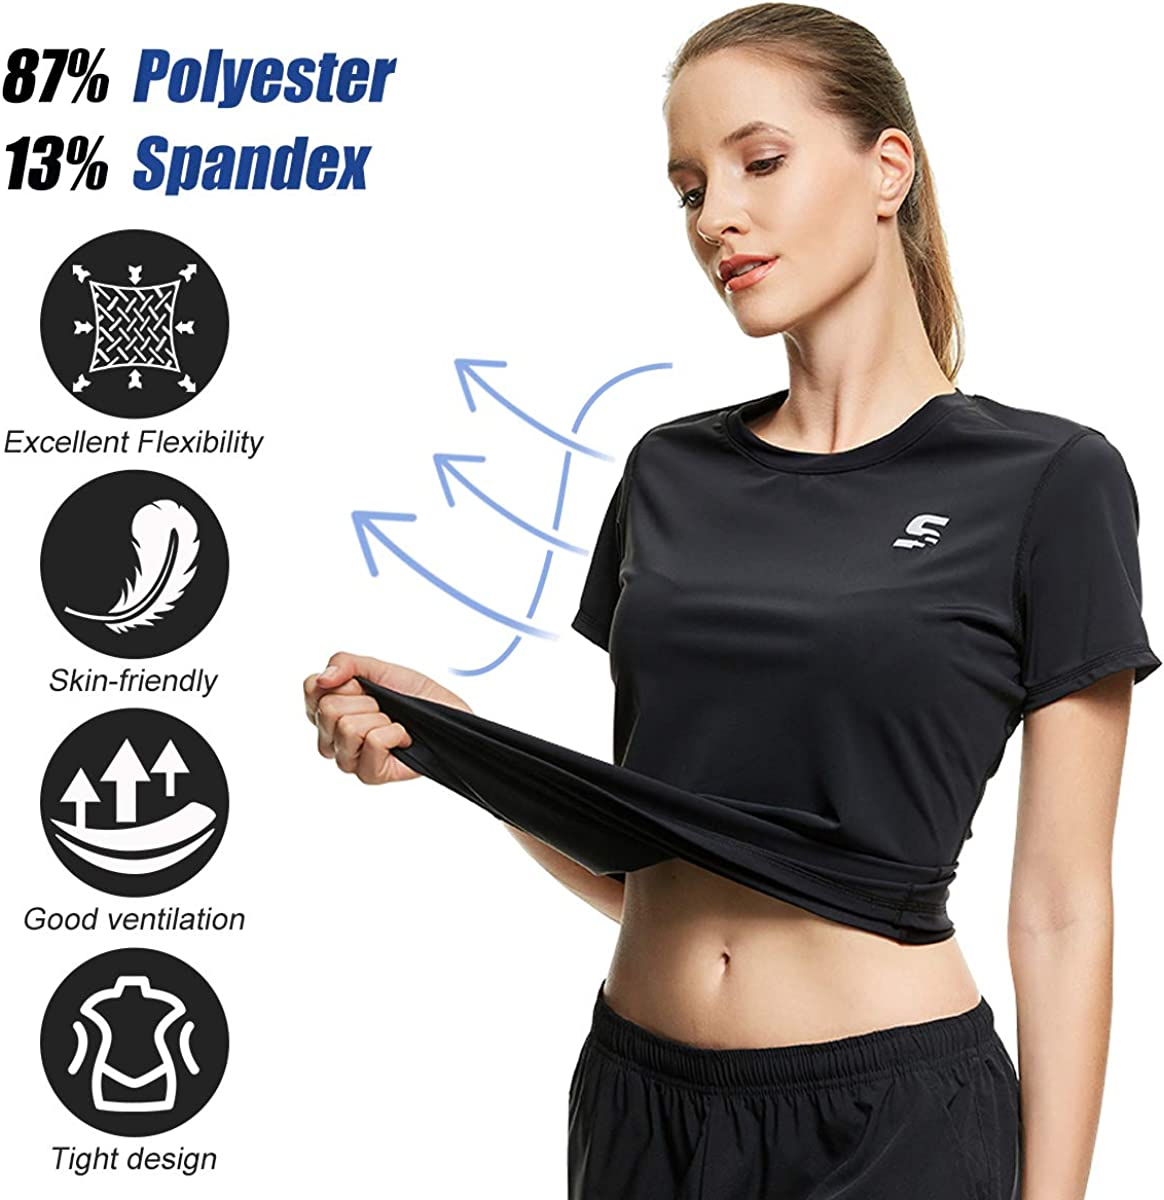 Workout Shirts for Women Running Sports Athletic T-Shirt Workout Tops Womens Compression Shirts Short Sleeve